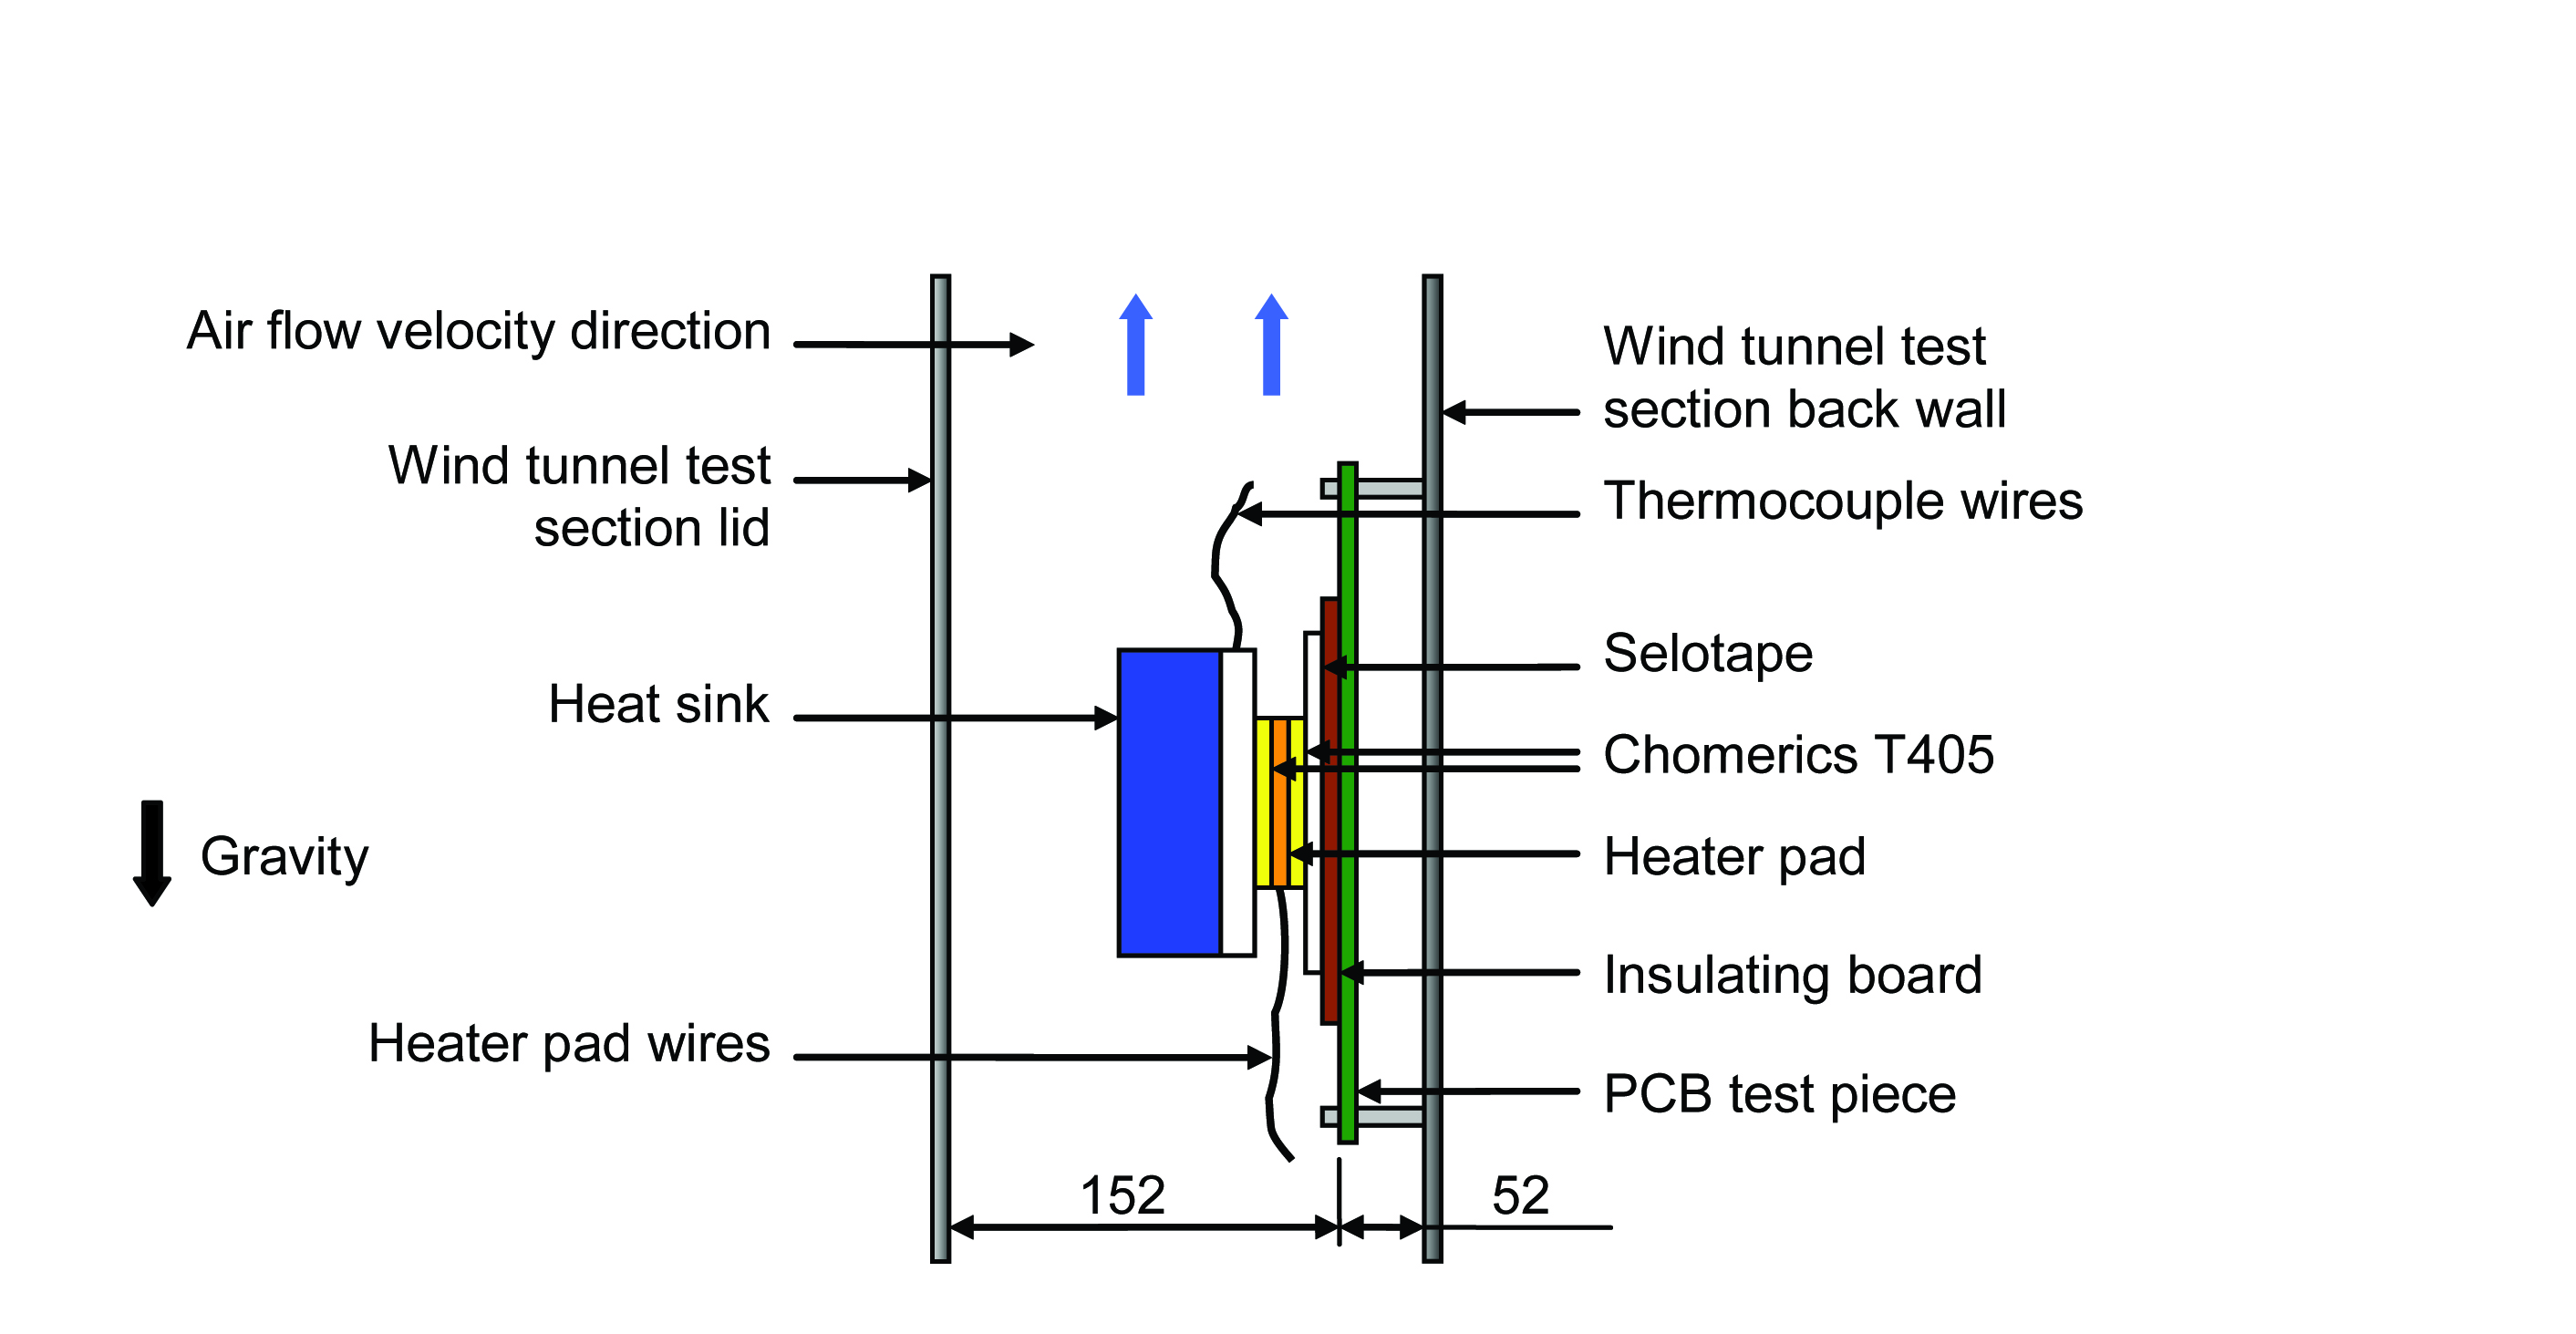 How Does Air Velocity Effect The Thermal Performance Of Heat Sinks Heating Pad Wiring Diagram